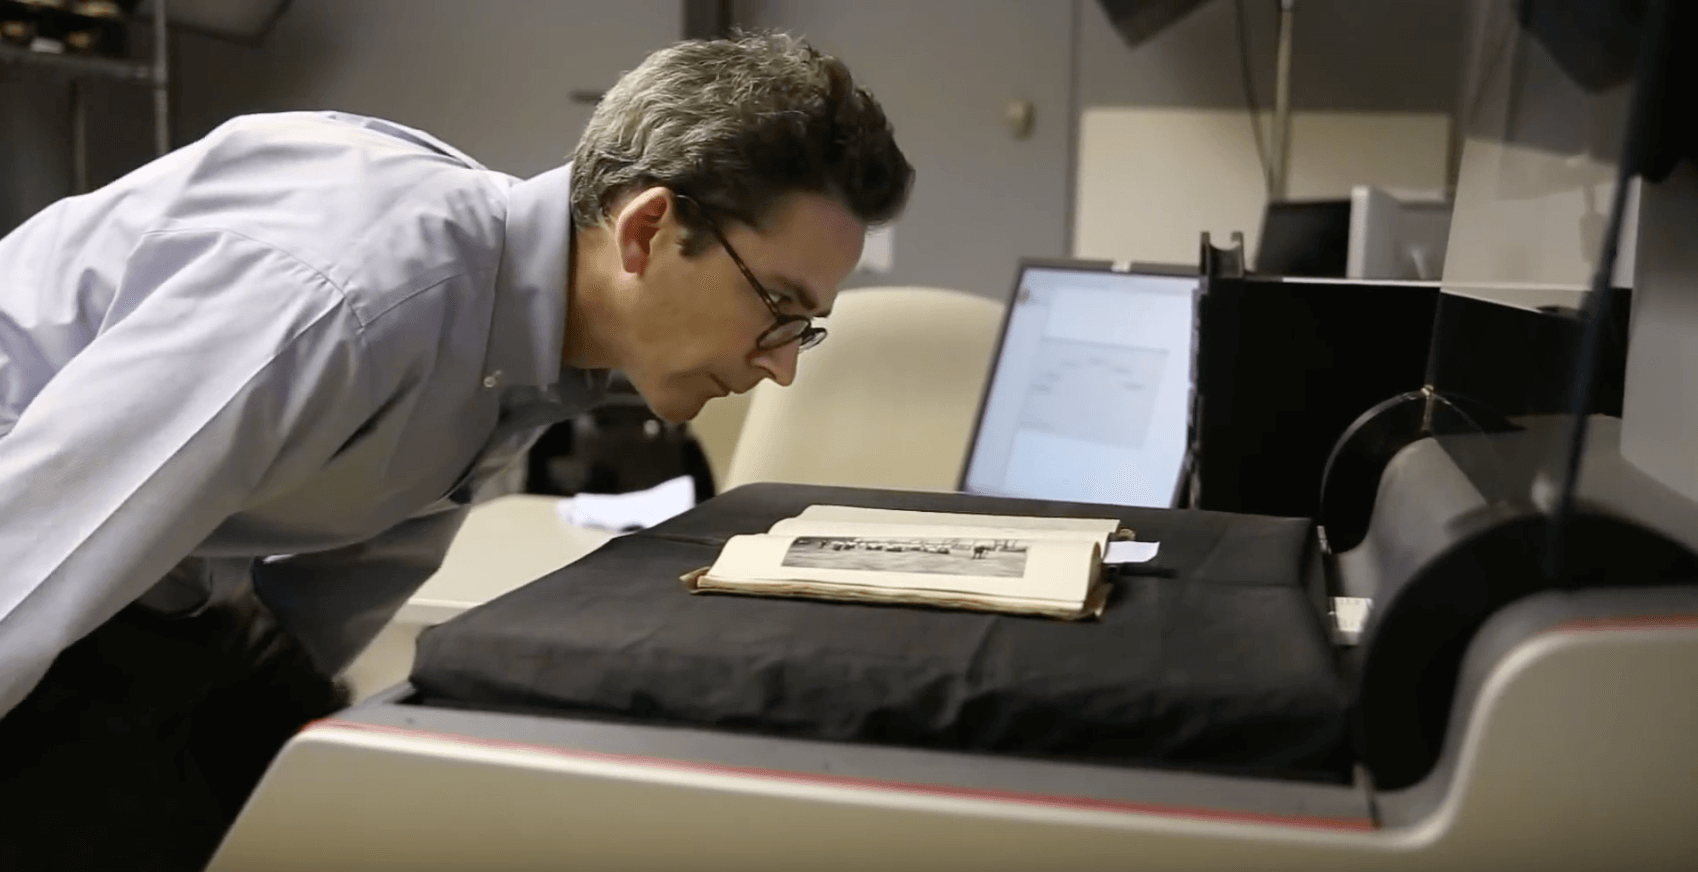 Person looks over a historic book as it is laying on a document scanner.